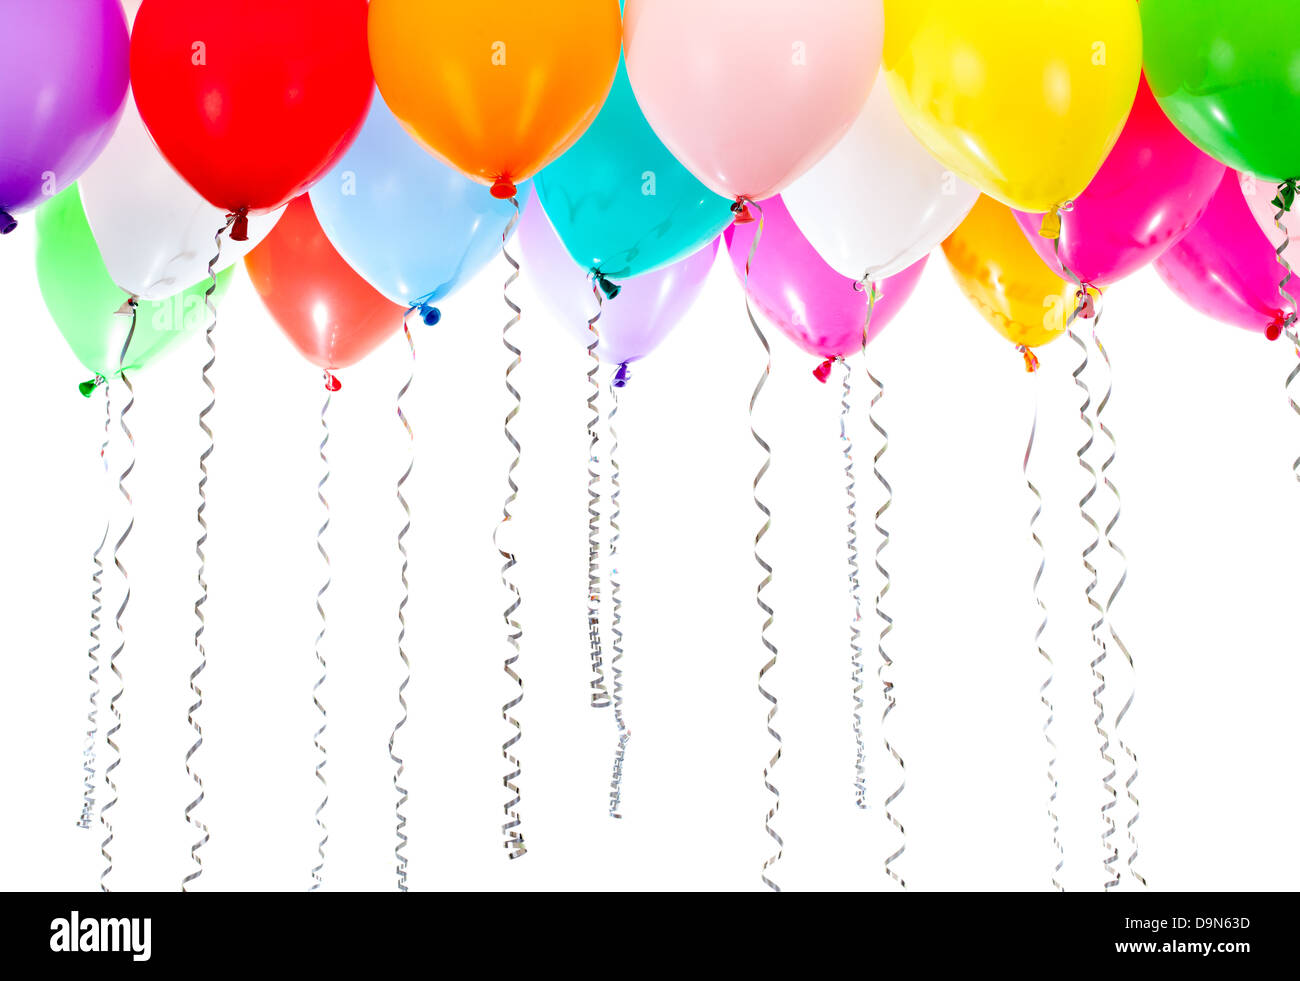 color balloons with streamers on birthday party - Stock Image